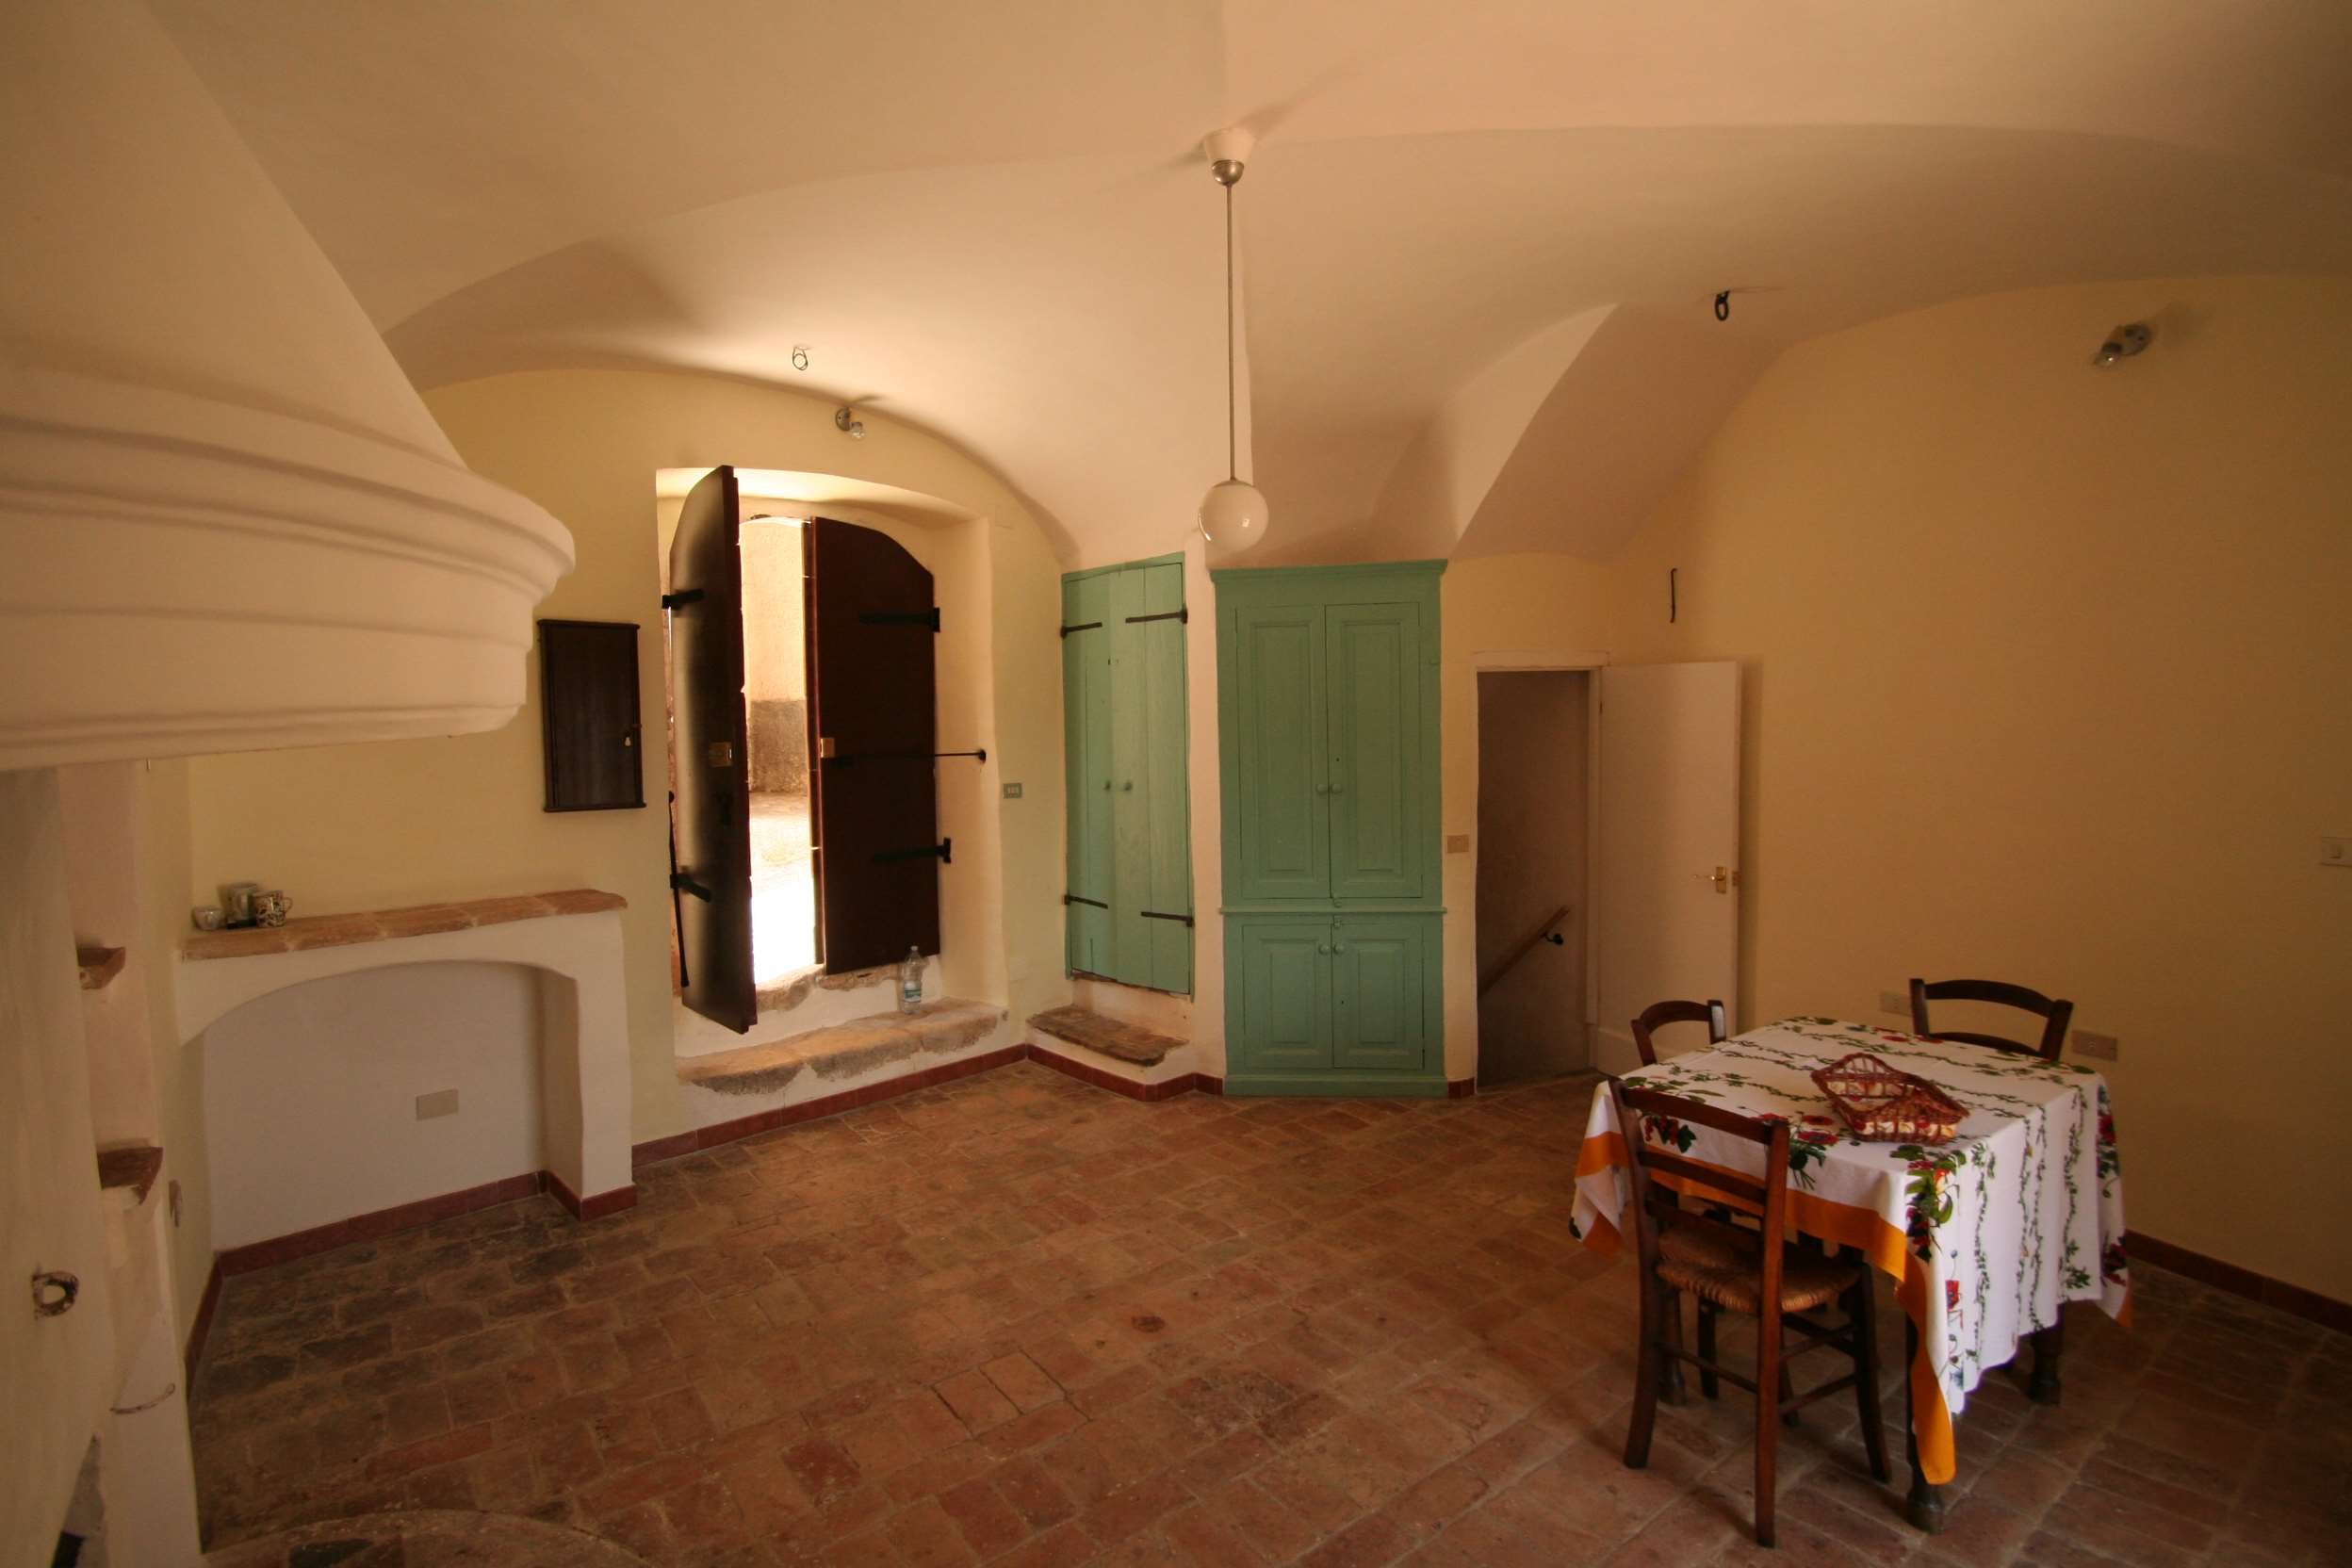 Living room with entrance from the street